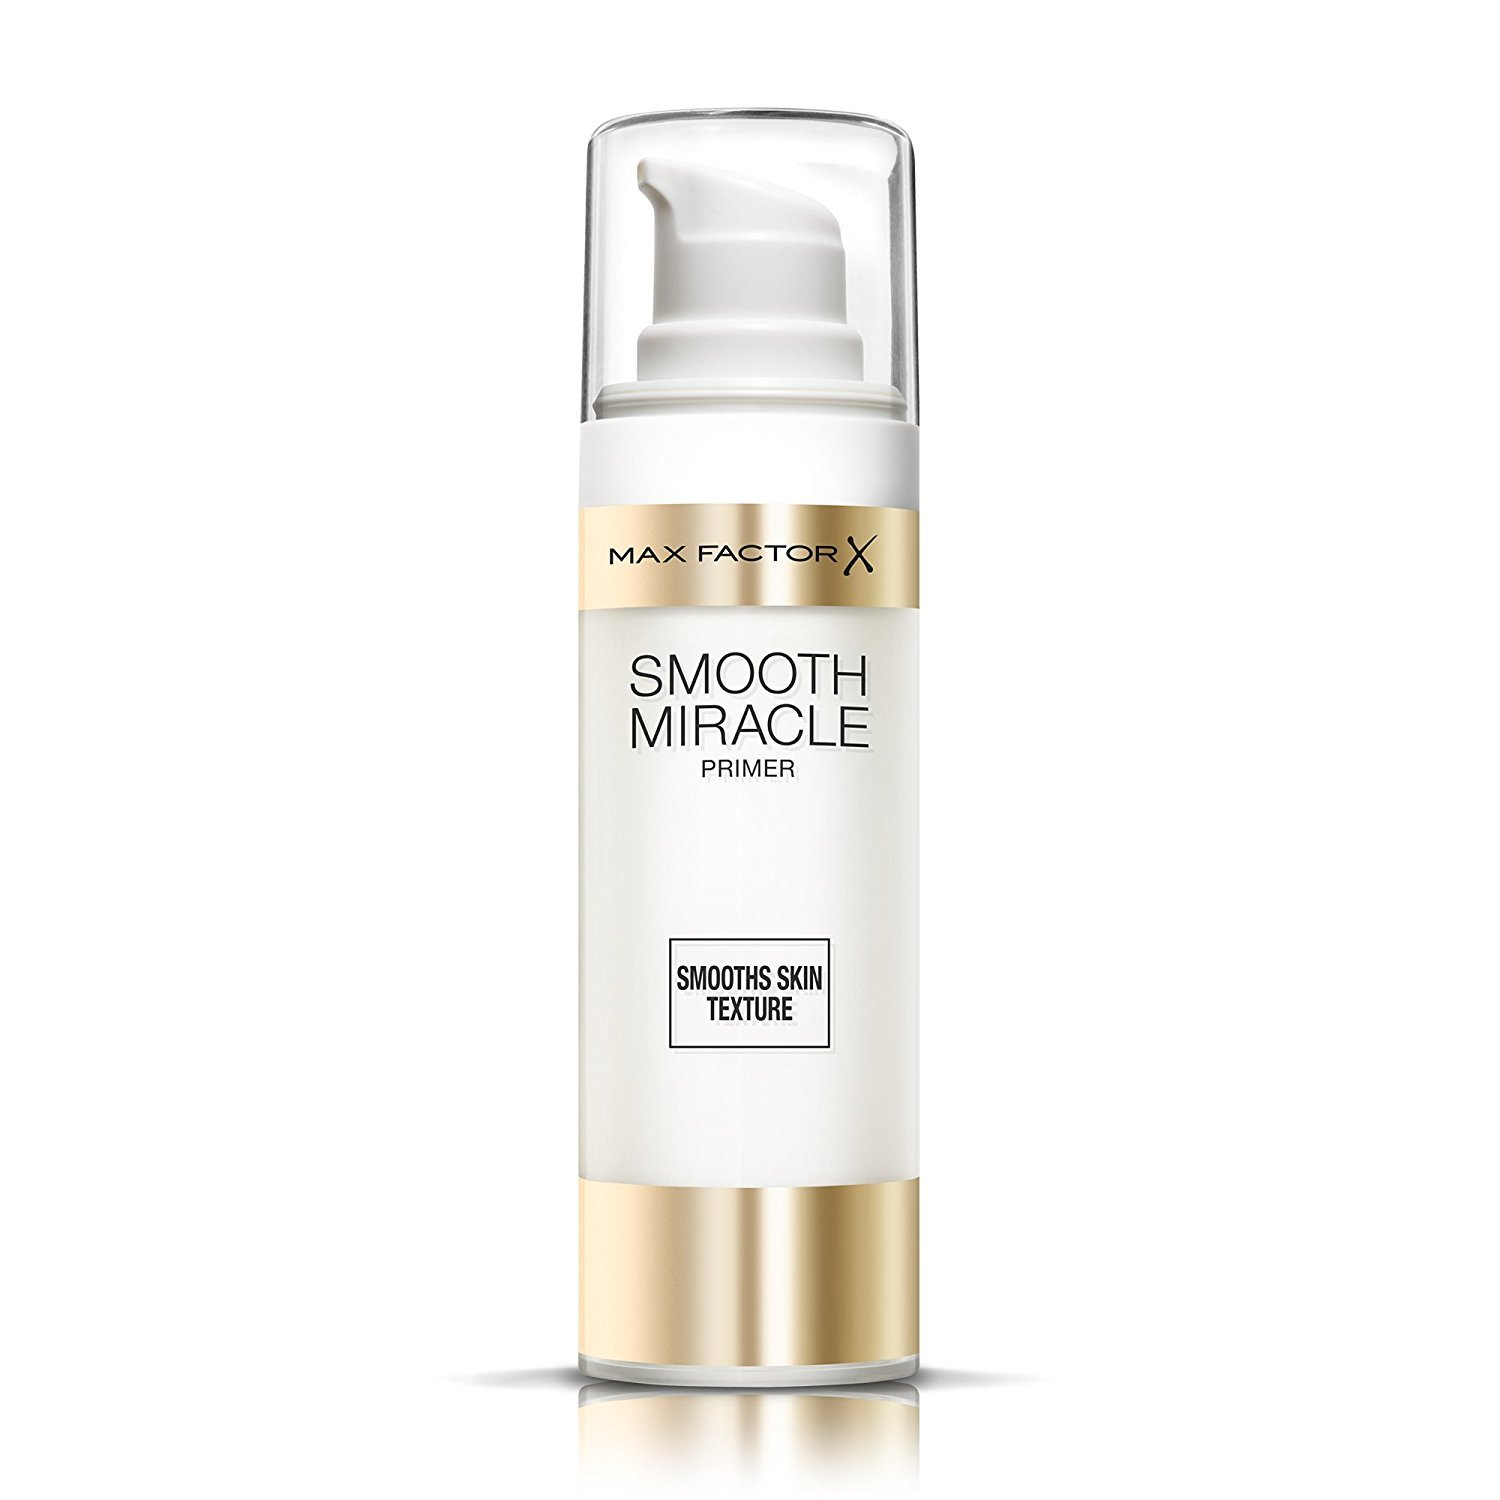 2 x Max Factor Smooth Miracle Primer Smooths Skin Texture 30ml - Sealed Proctor and Gamble